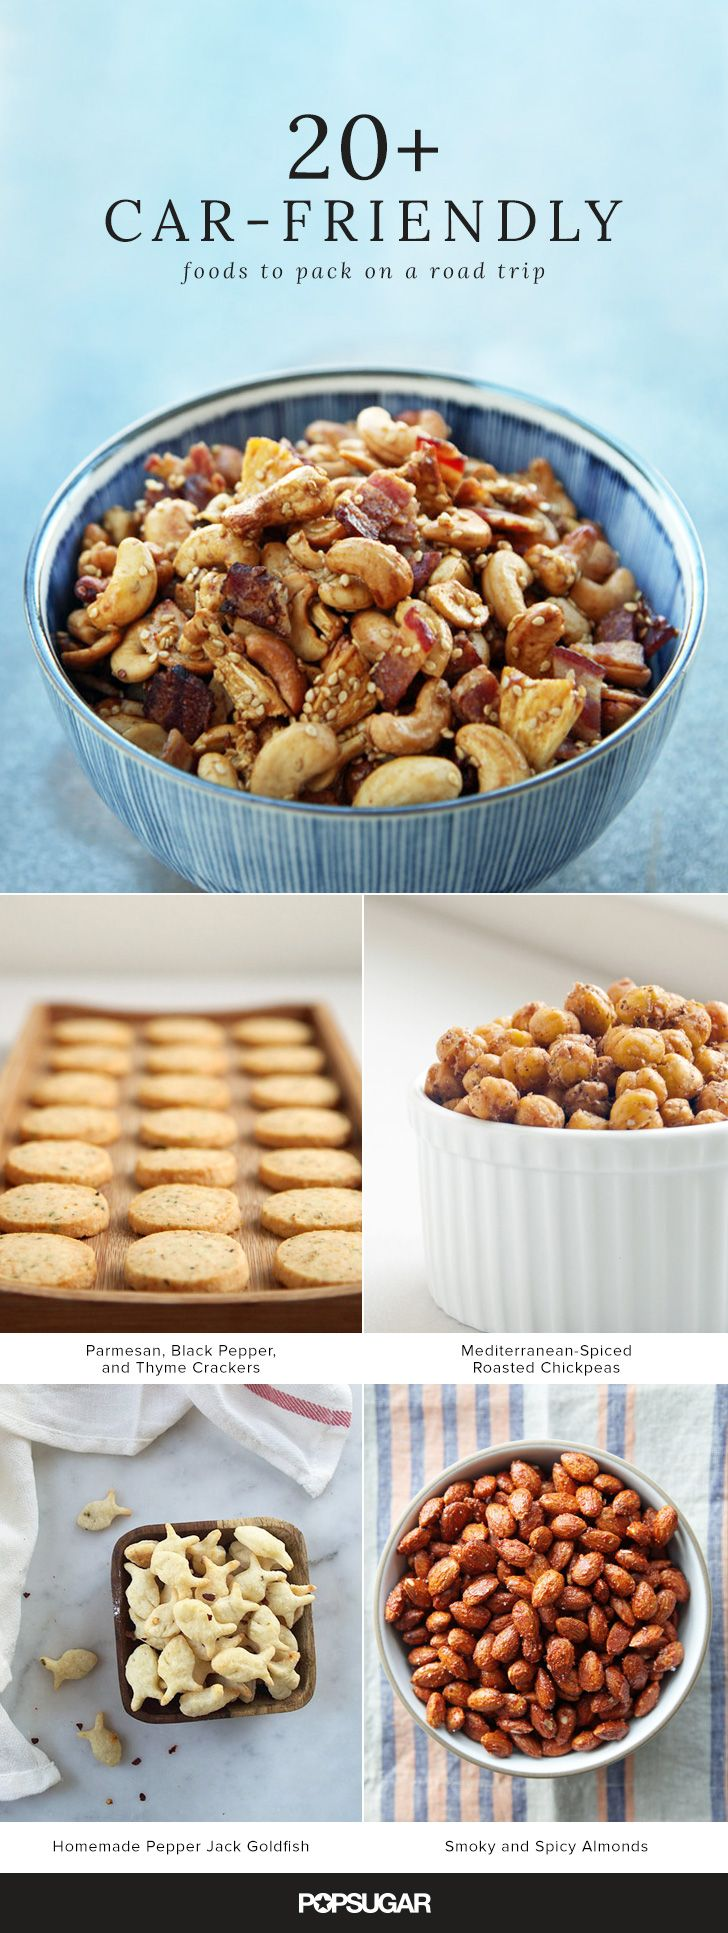 Sometimes the journey is the destination, so if you've ultimately got your sights set on good eats, then don't overlook the ever-important car snacks. Here are a few nibbles that are just as appetizing as they are portable and transport-resistant.